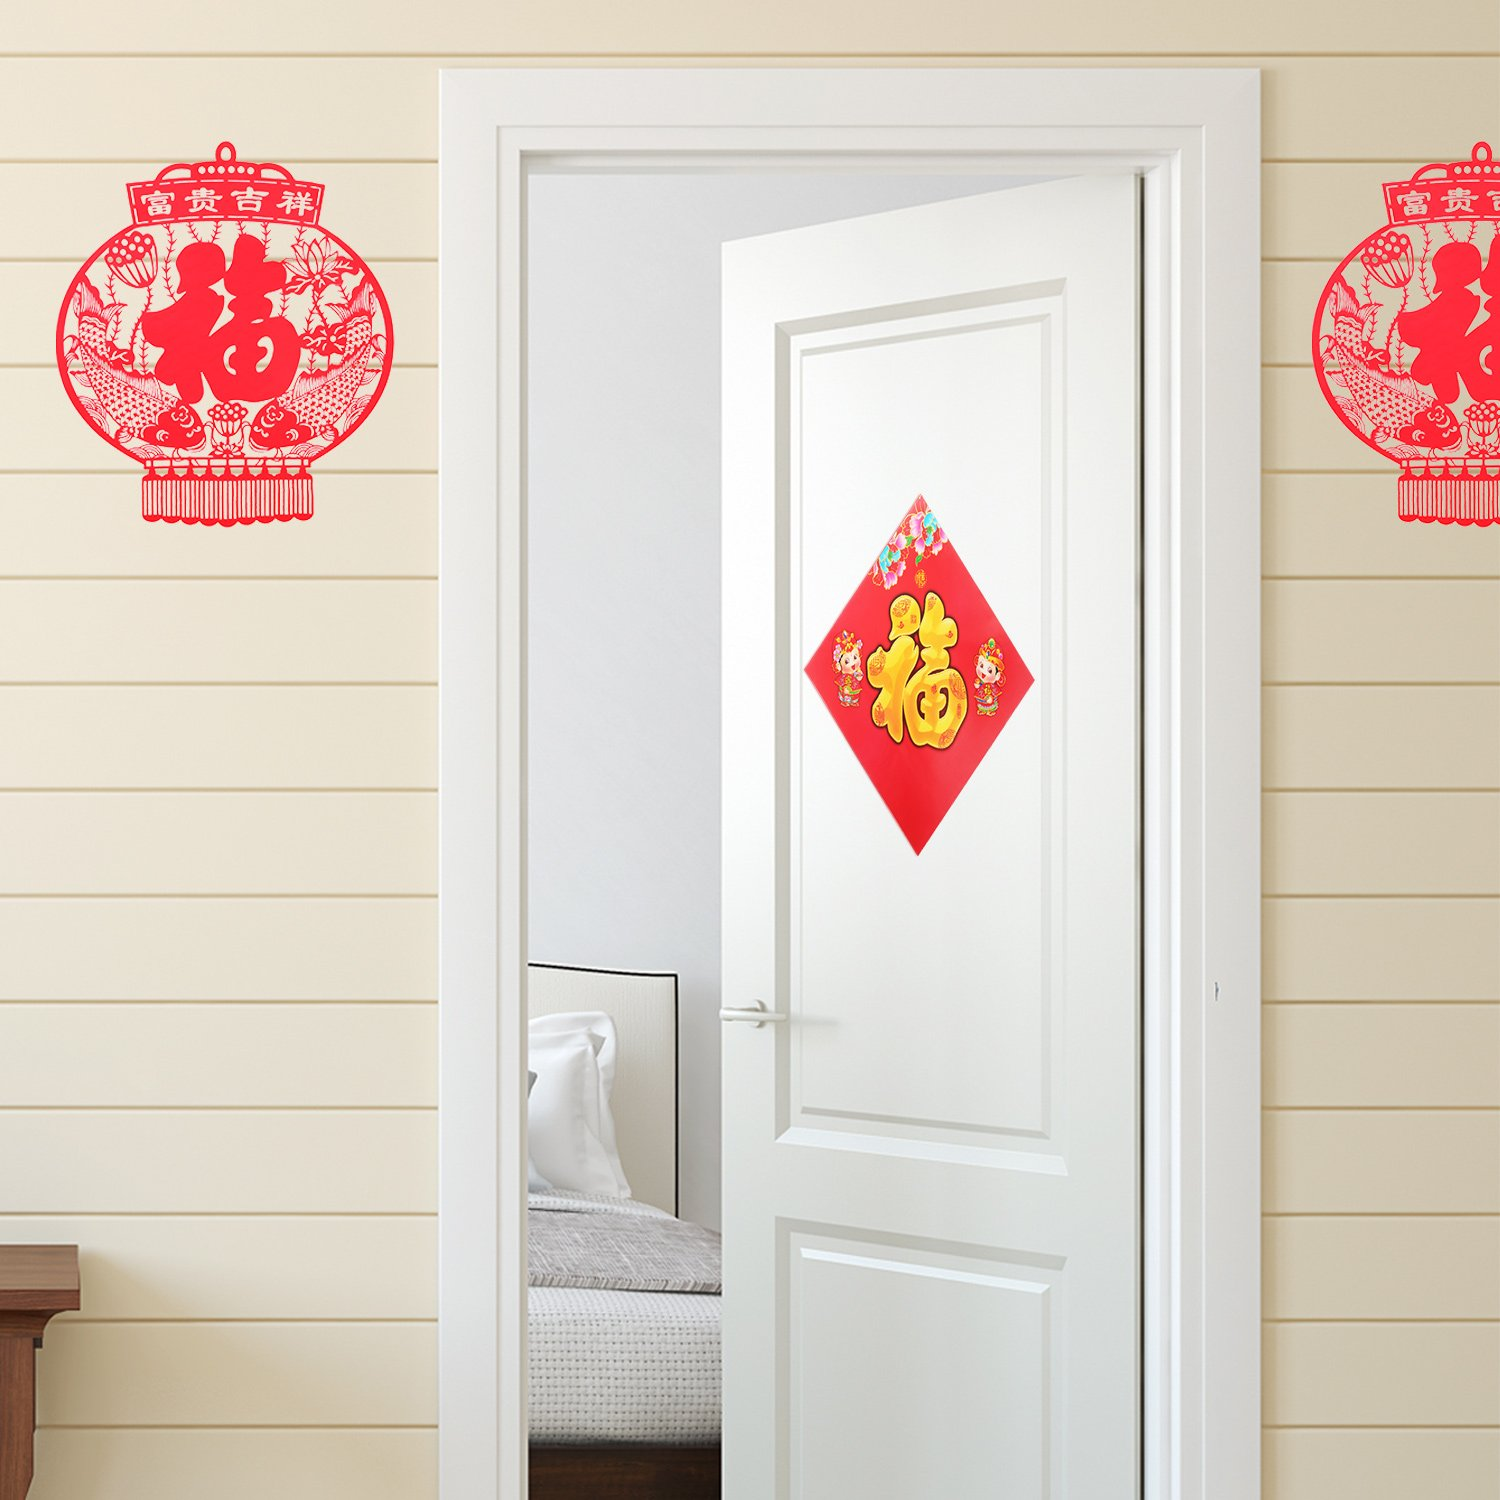 Mtlee Chinese Couplet Decorative Gift Kit for 2019 Chinese New Year Spring Festival, Includes Chun Lian, Fu Characters, Chinese Fu Stickers, Door Stickers, Red Envelopes, FU Bag (Set of 27 Pieces) by Mtlee (Image #5)